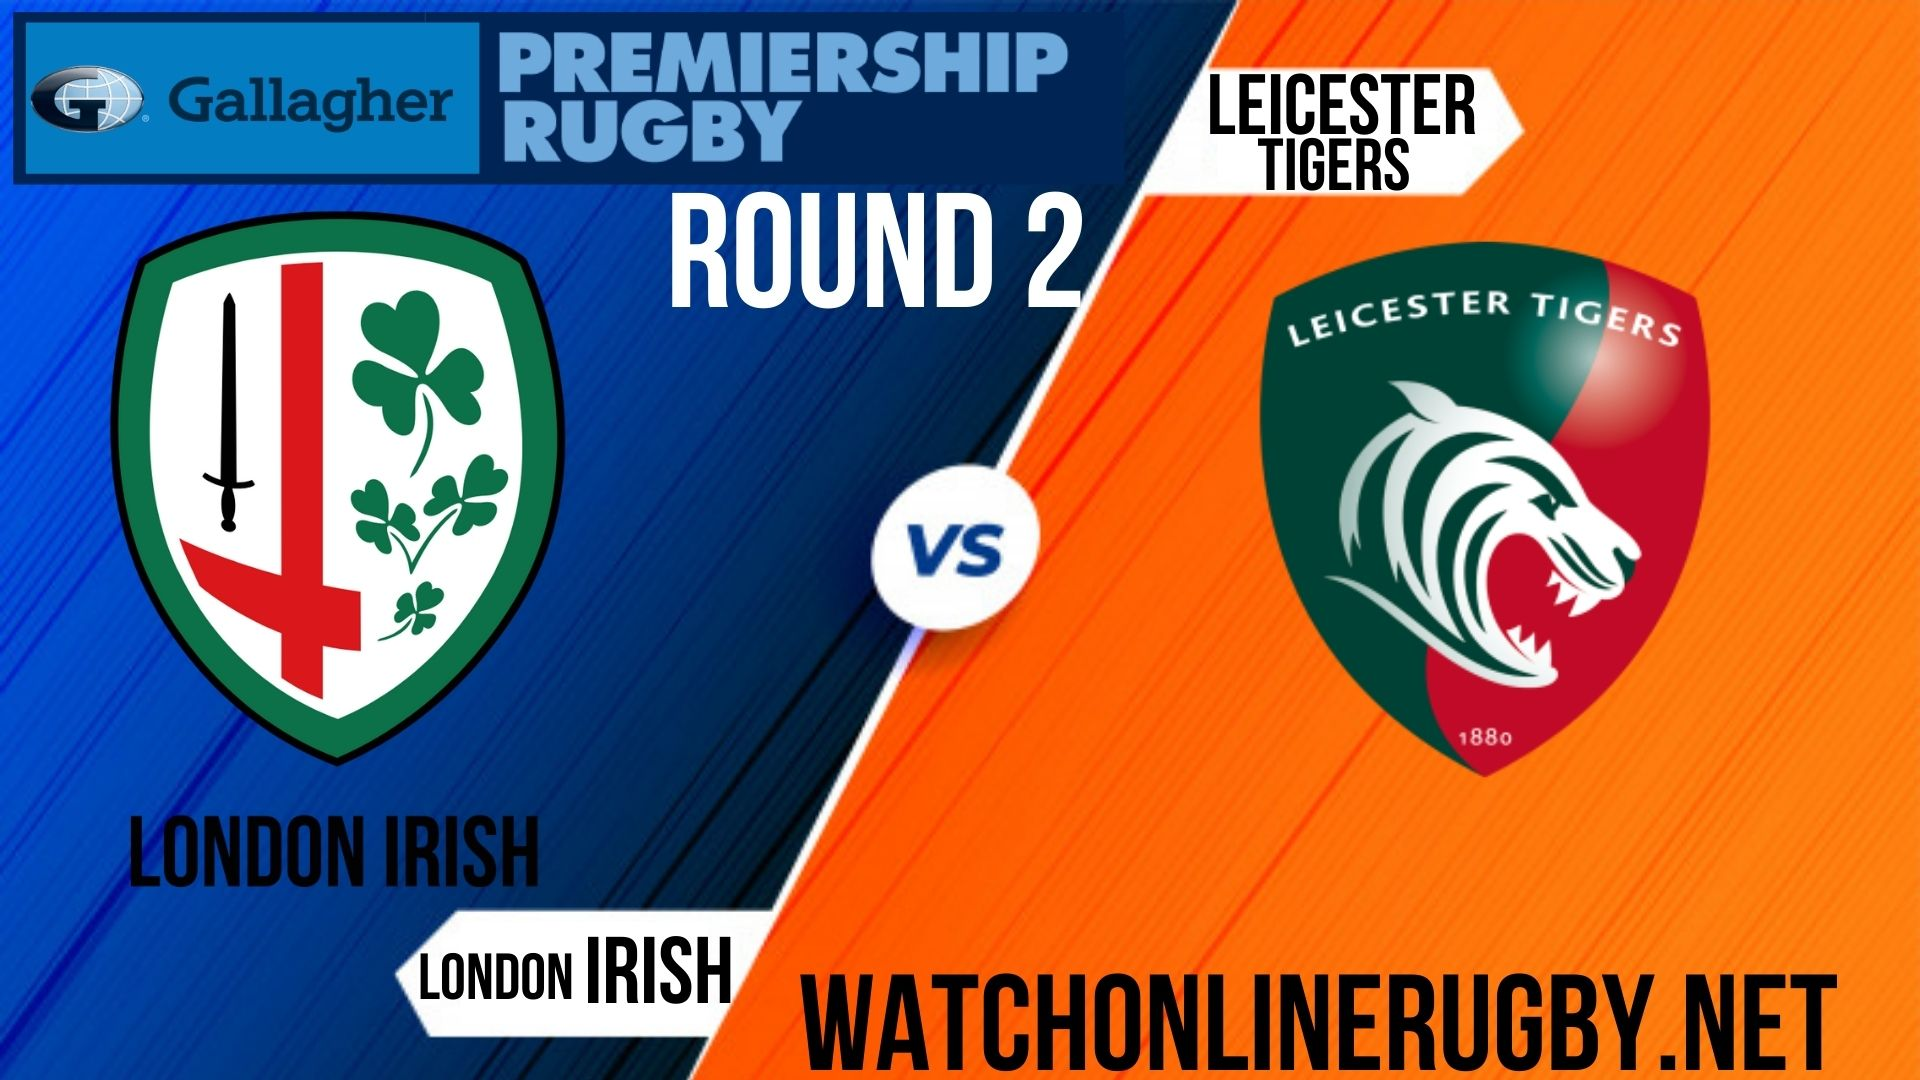 London Irish vs Leicester Tigers Premiership Rugby 2020 RD 2